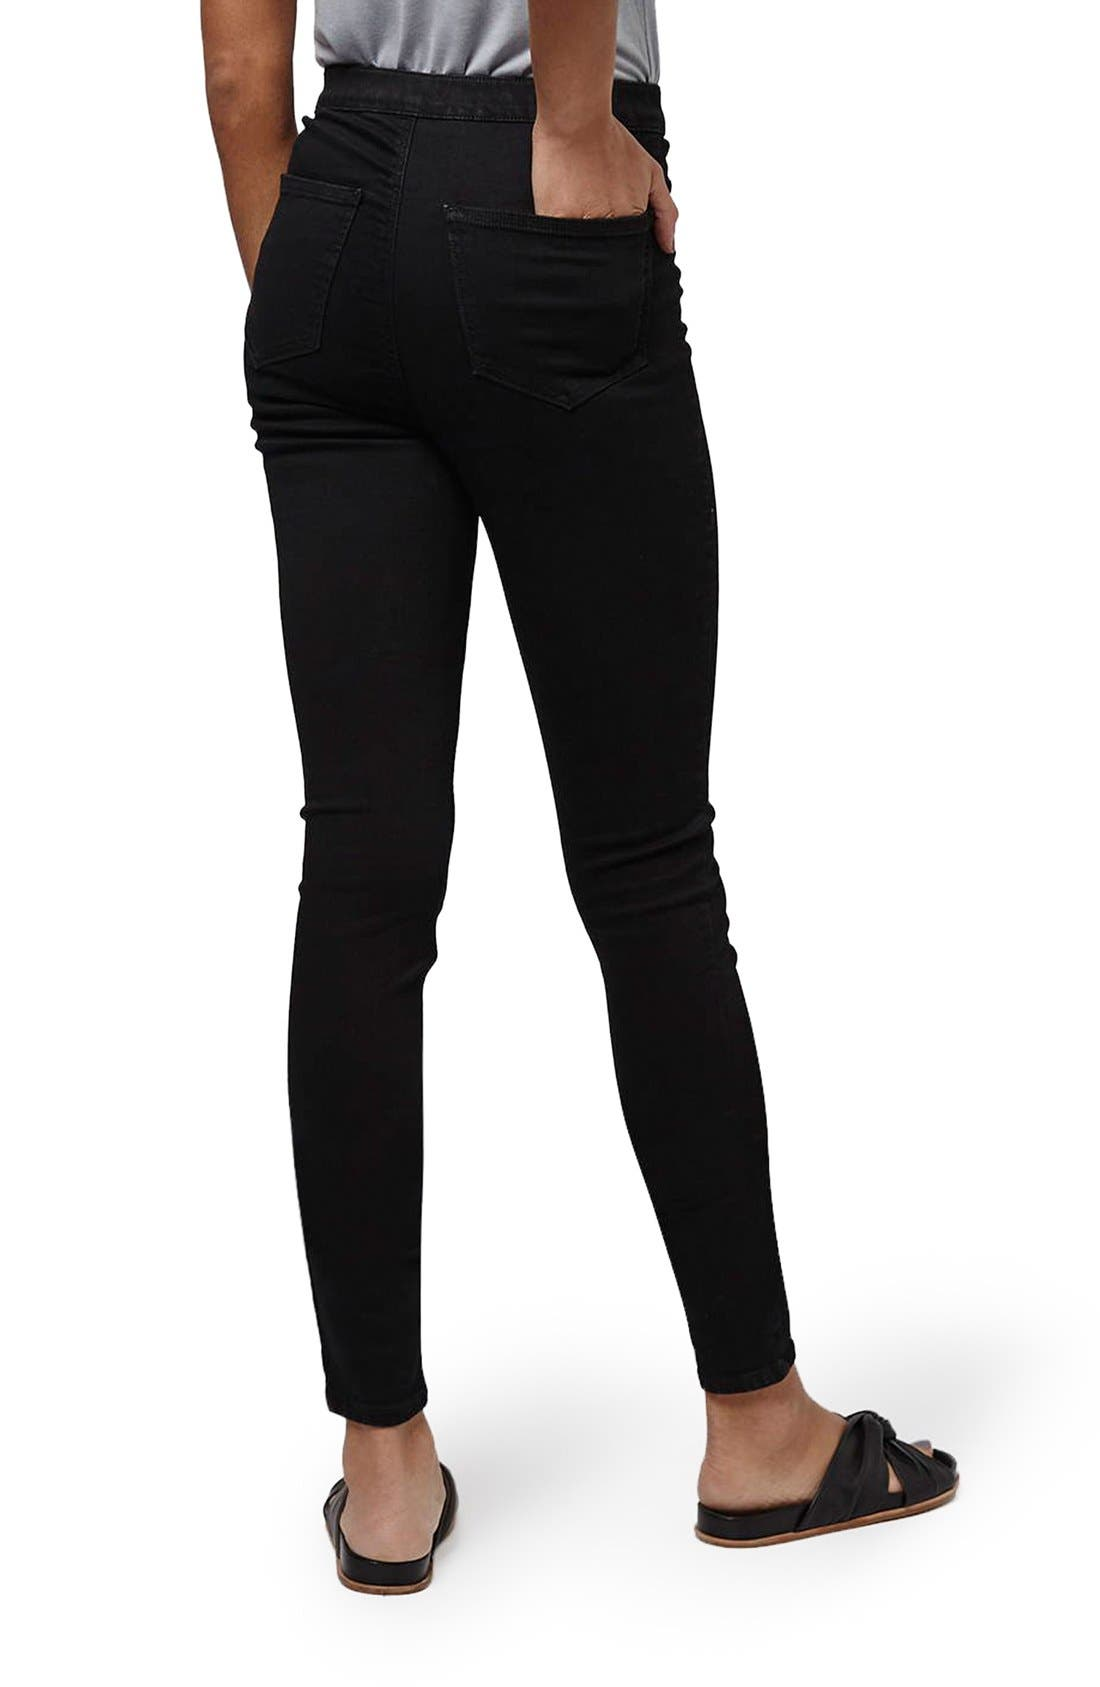 Alternate Image 3  - Topshop 'Joni - Holding Power' High Waist Skinny Jeans (Tall)